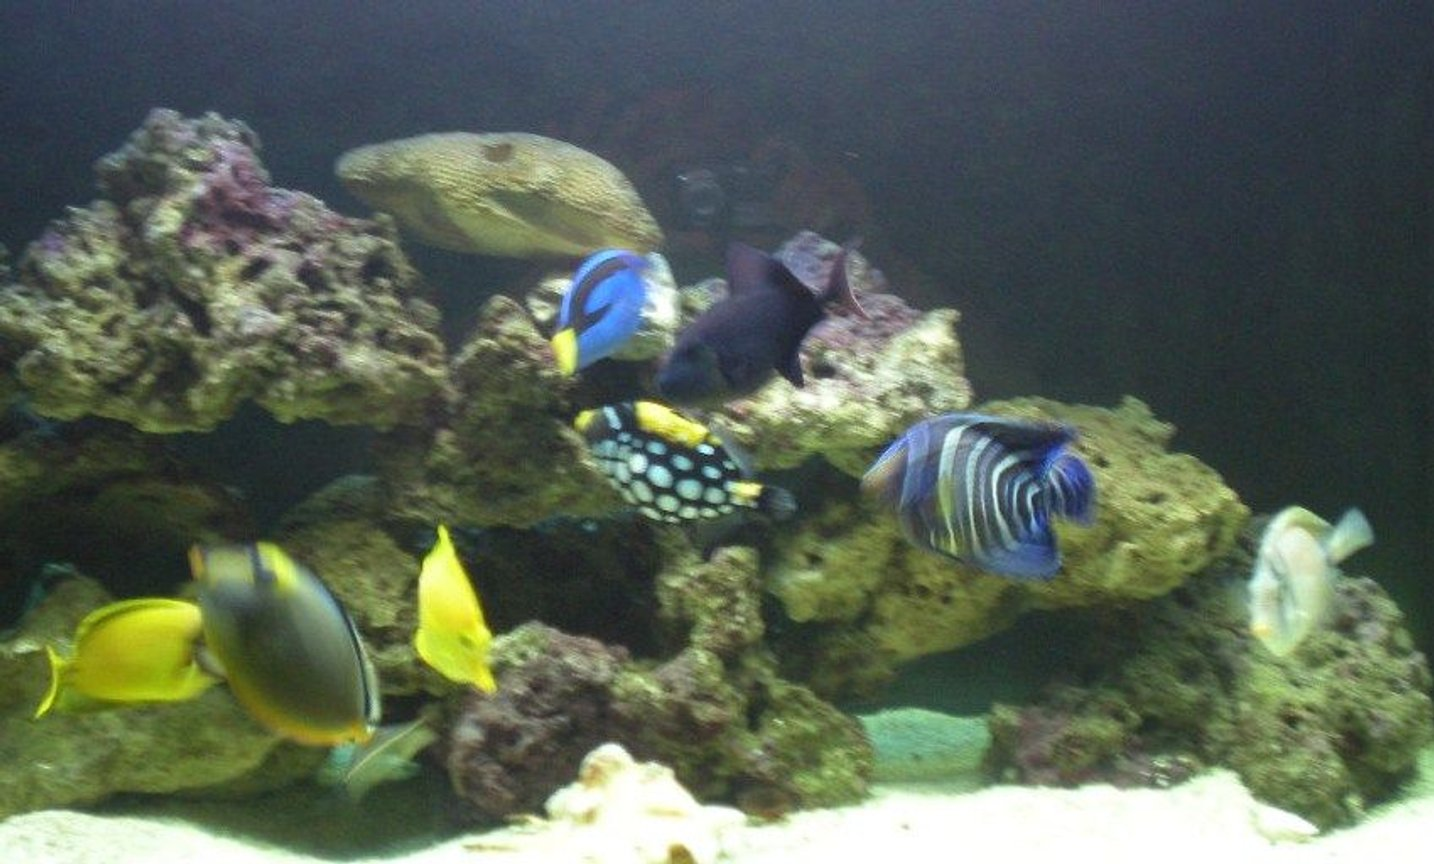 saltwater fish - balistoides conspicillum - clown triggerfish stocking in 90 gallons tank - Some of my fish Hanging out.